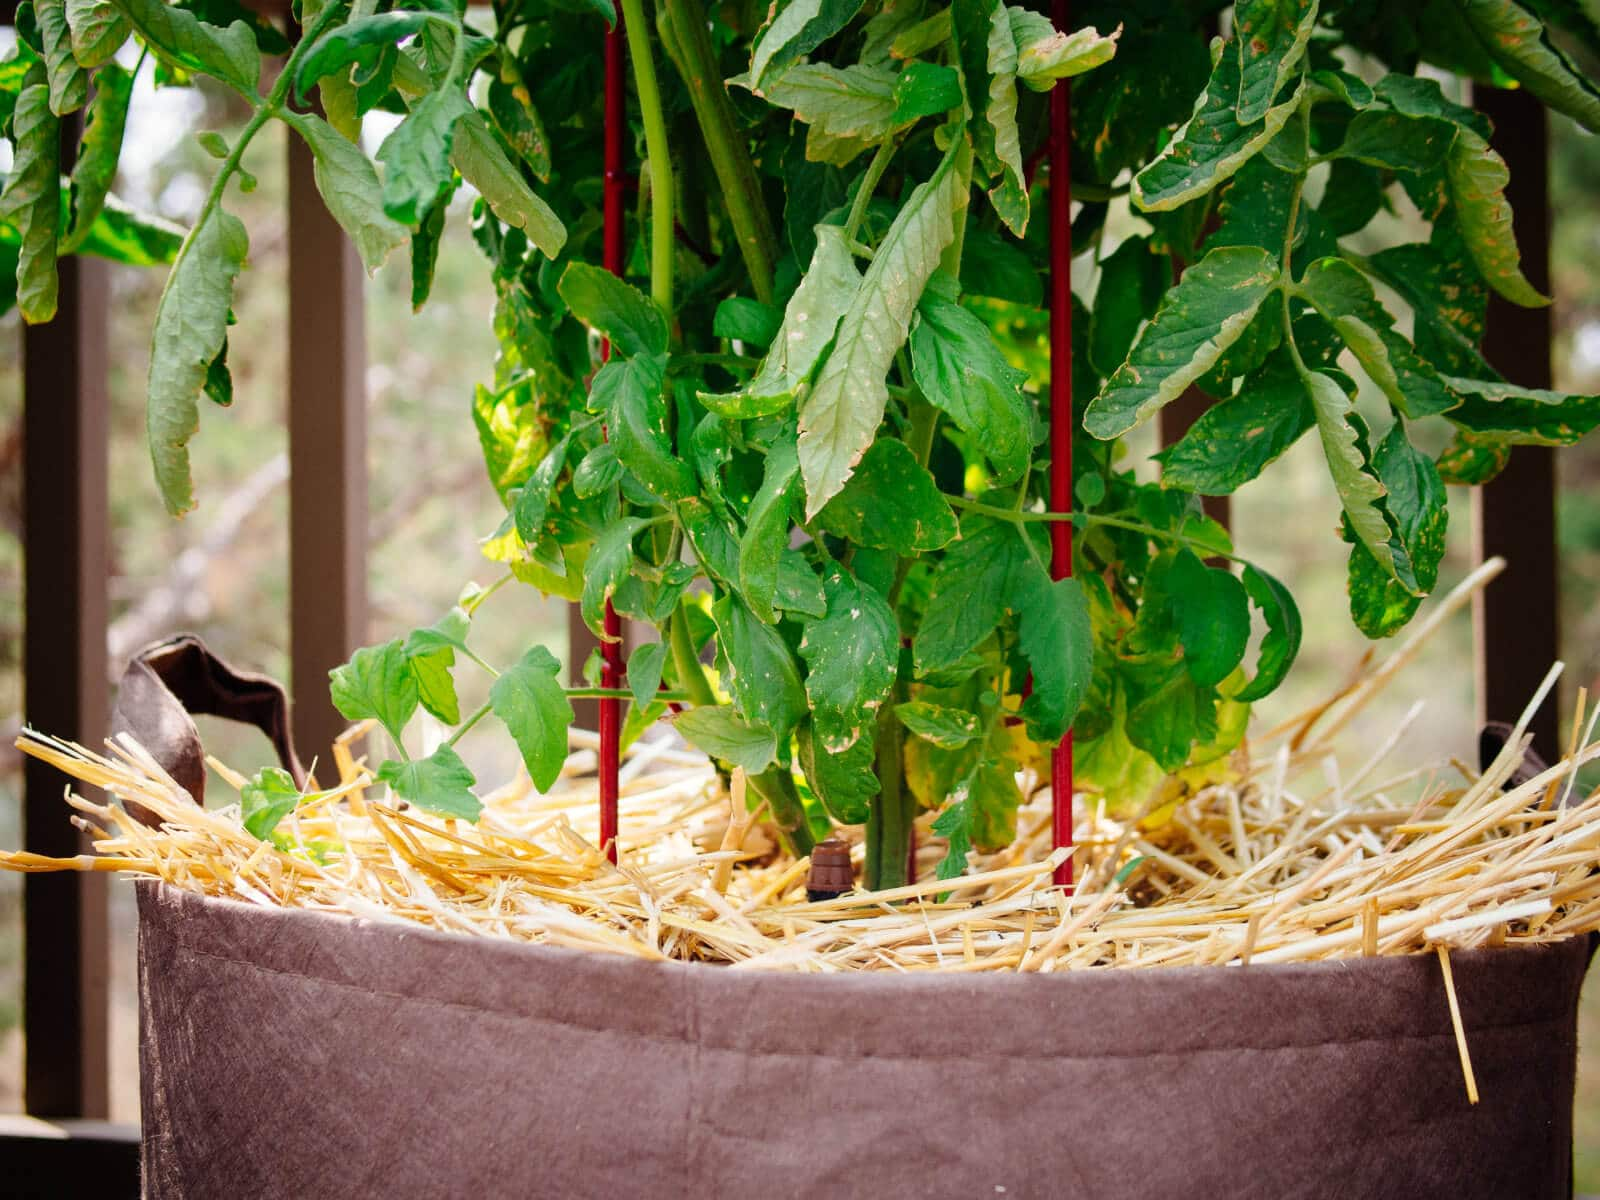 Mulch the soil around your tomato plants